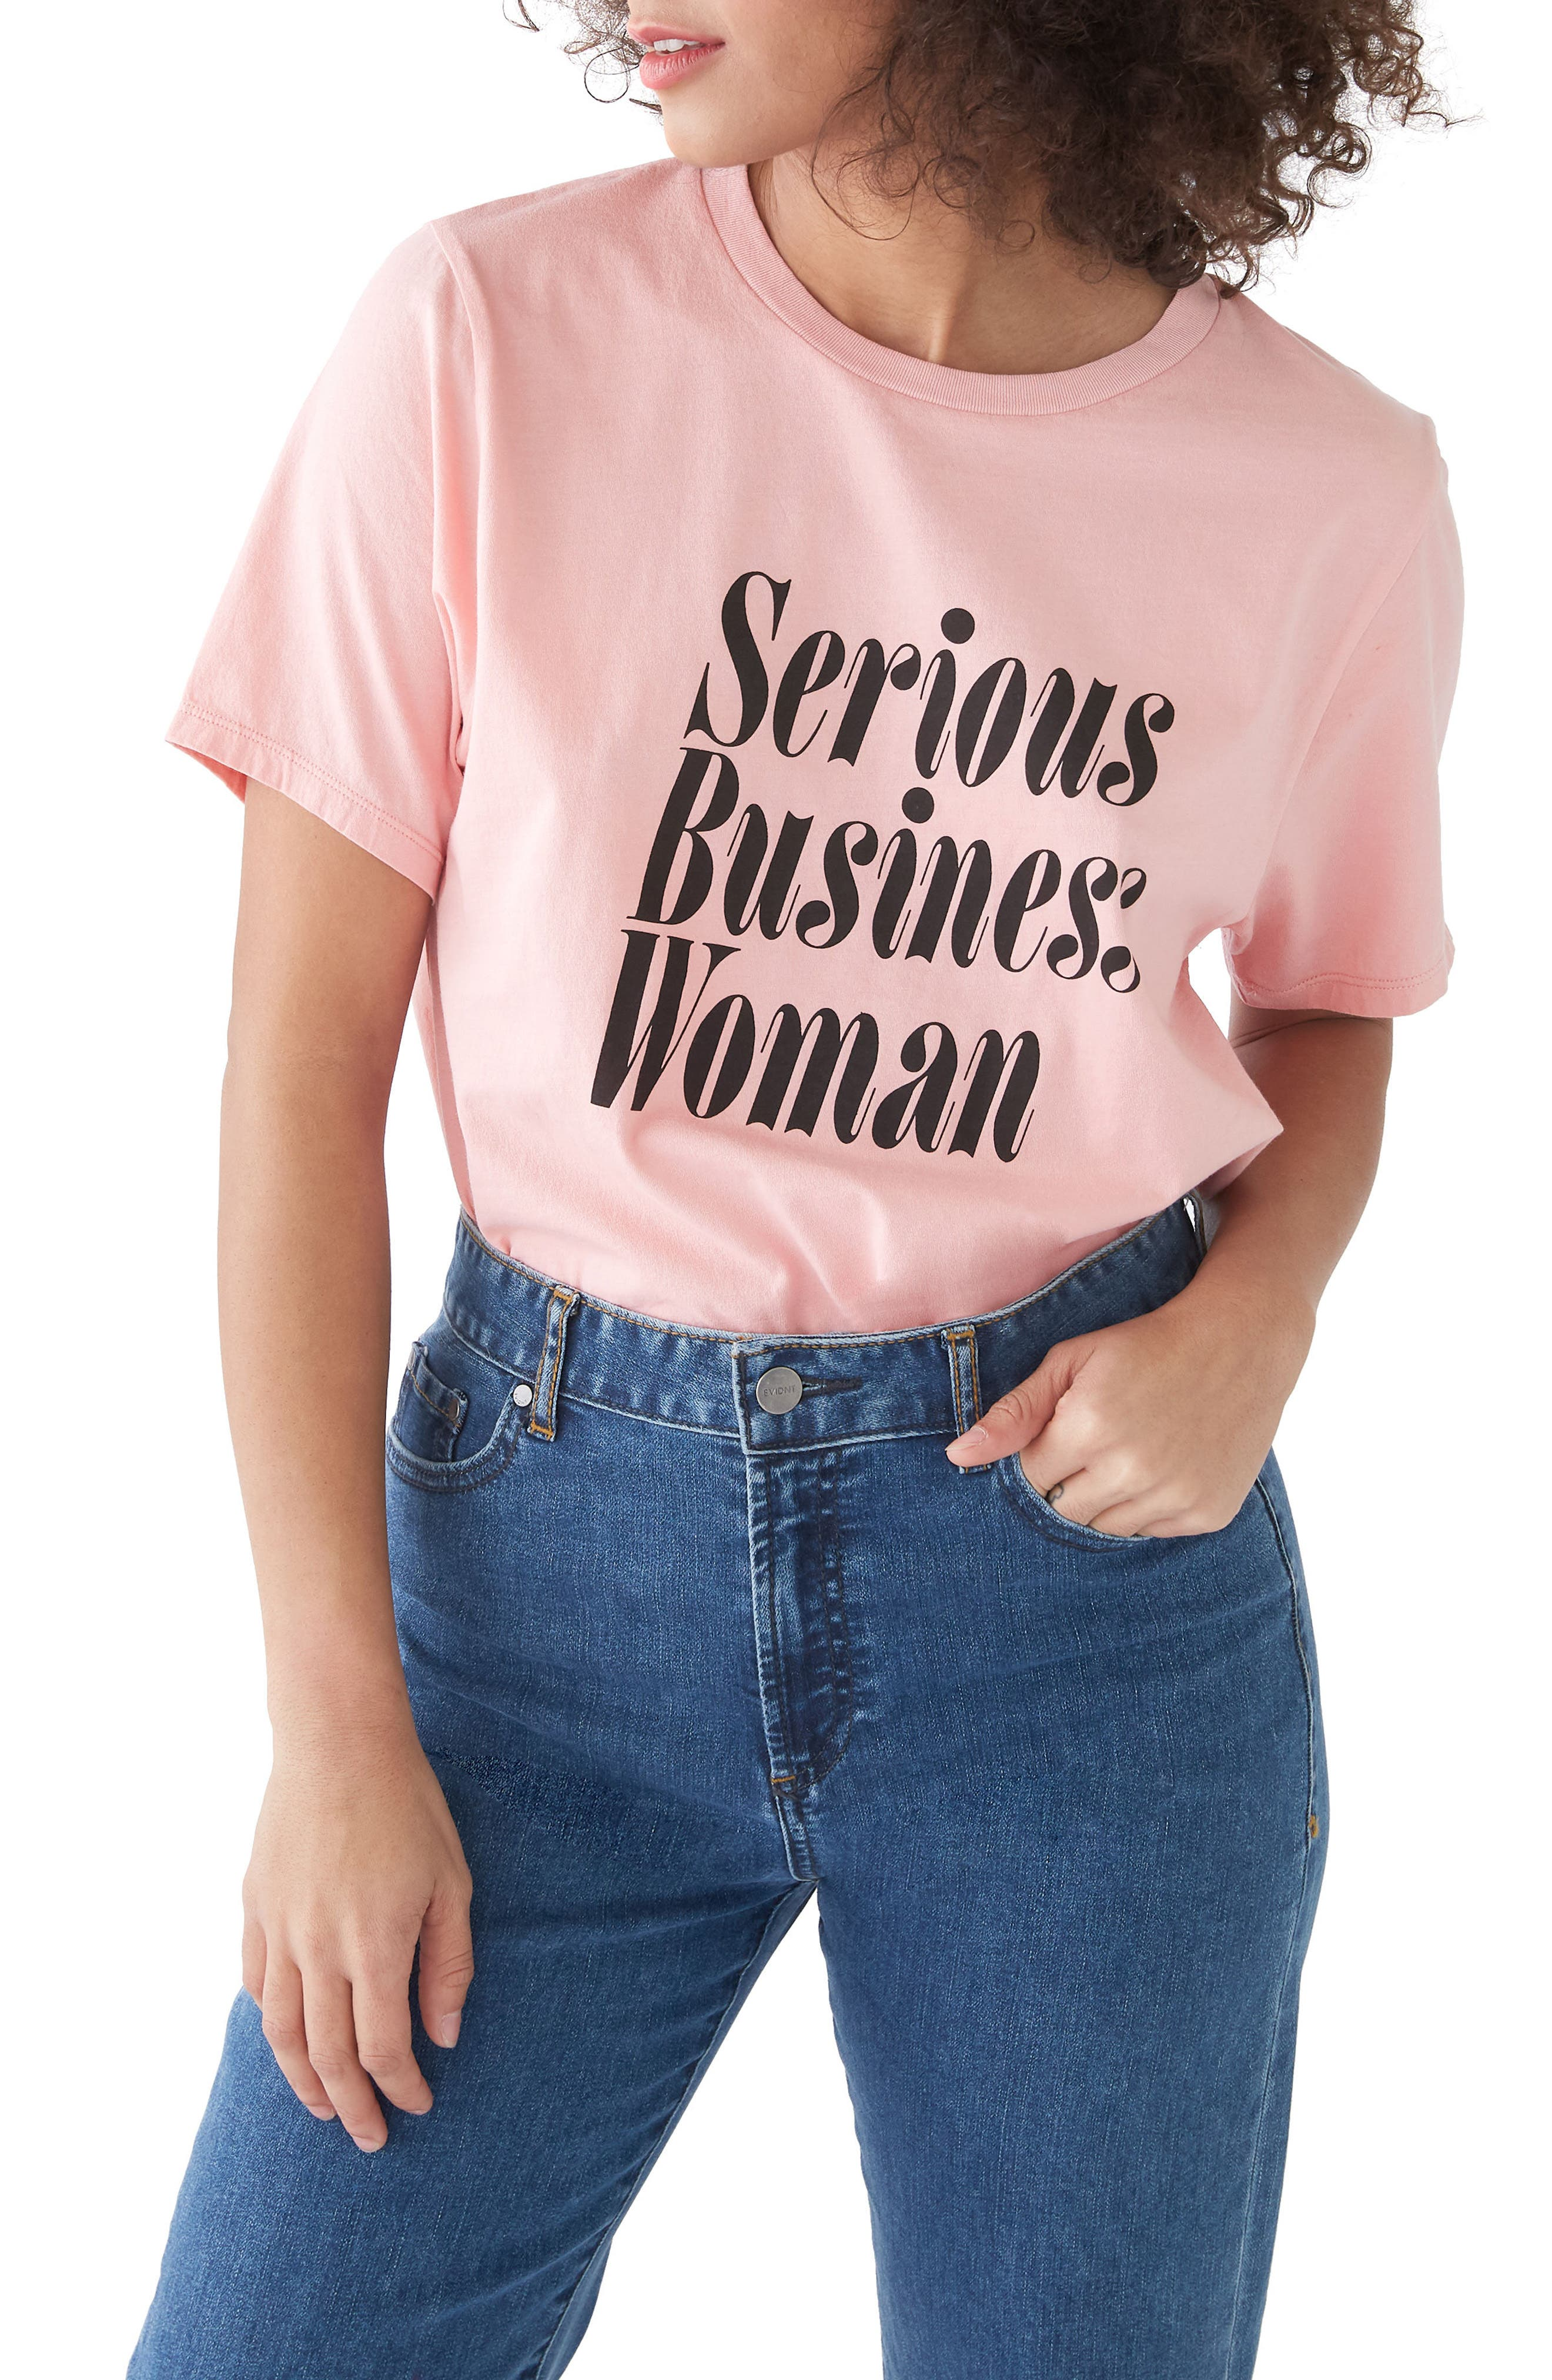 Serious Business Woman Classic Tee,                             Main thumbnail 1, color,                             CAMEO PINK